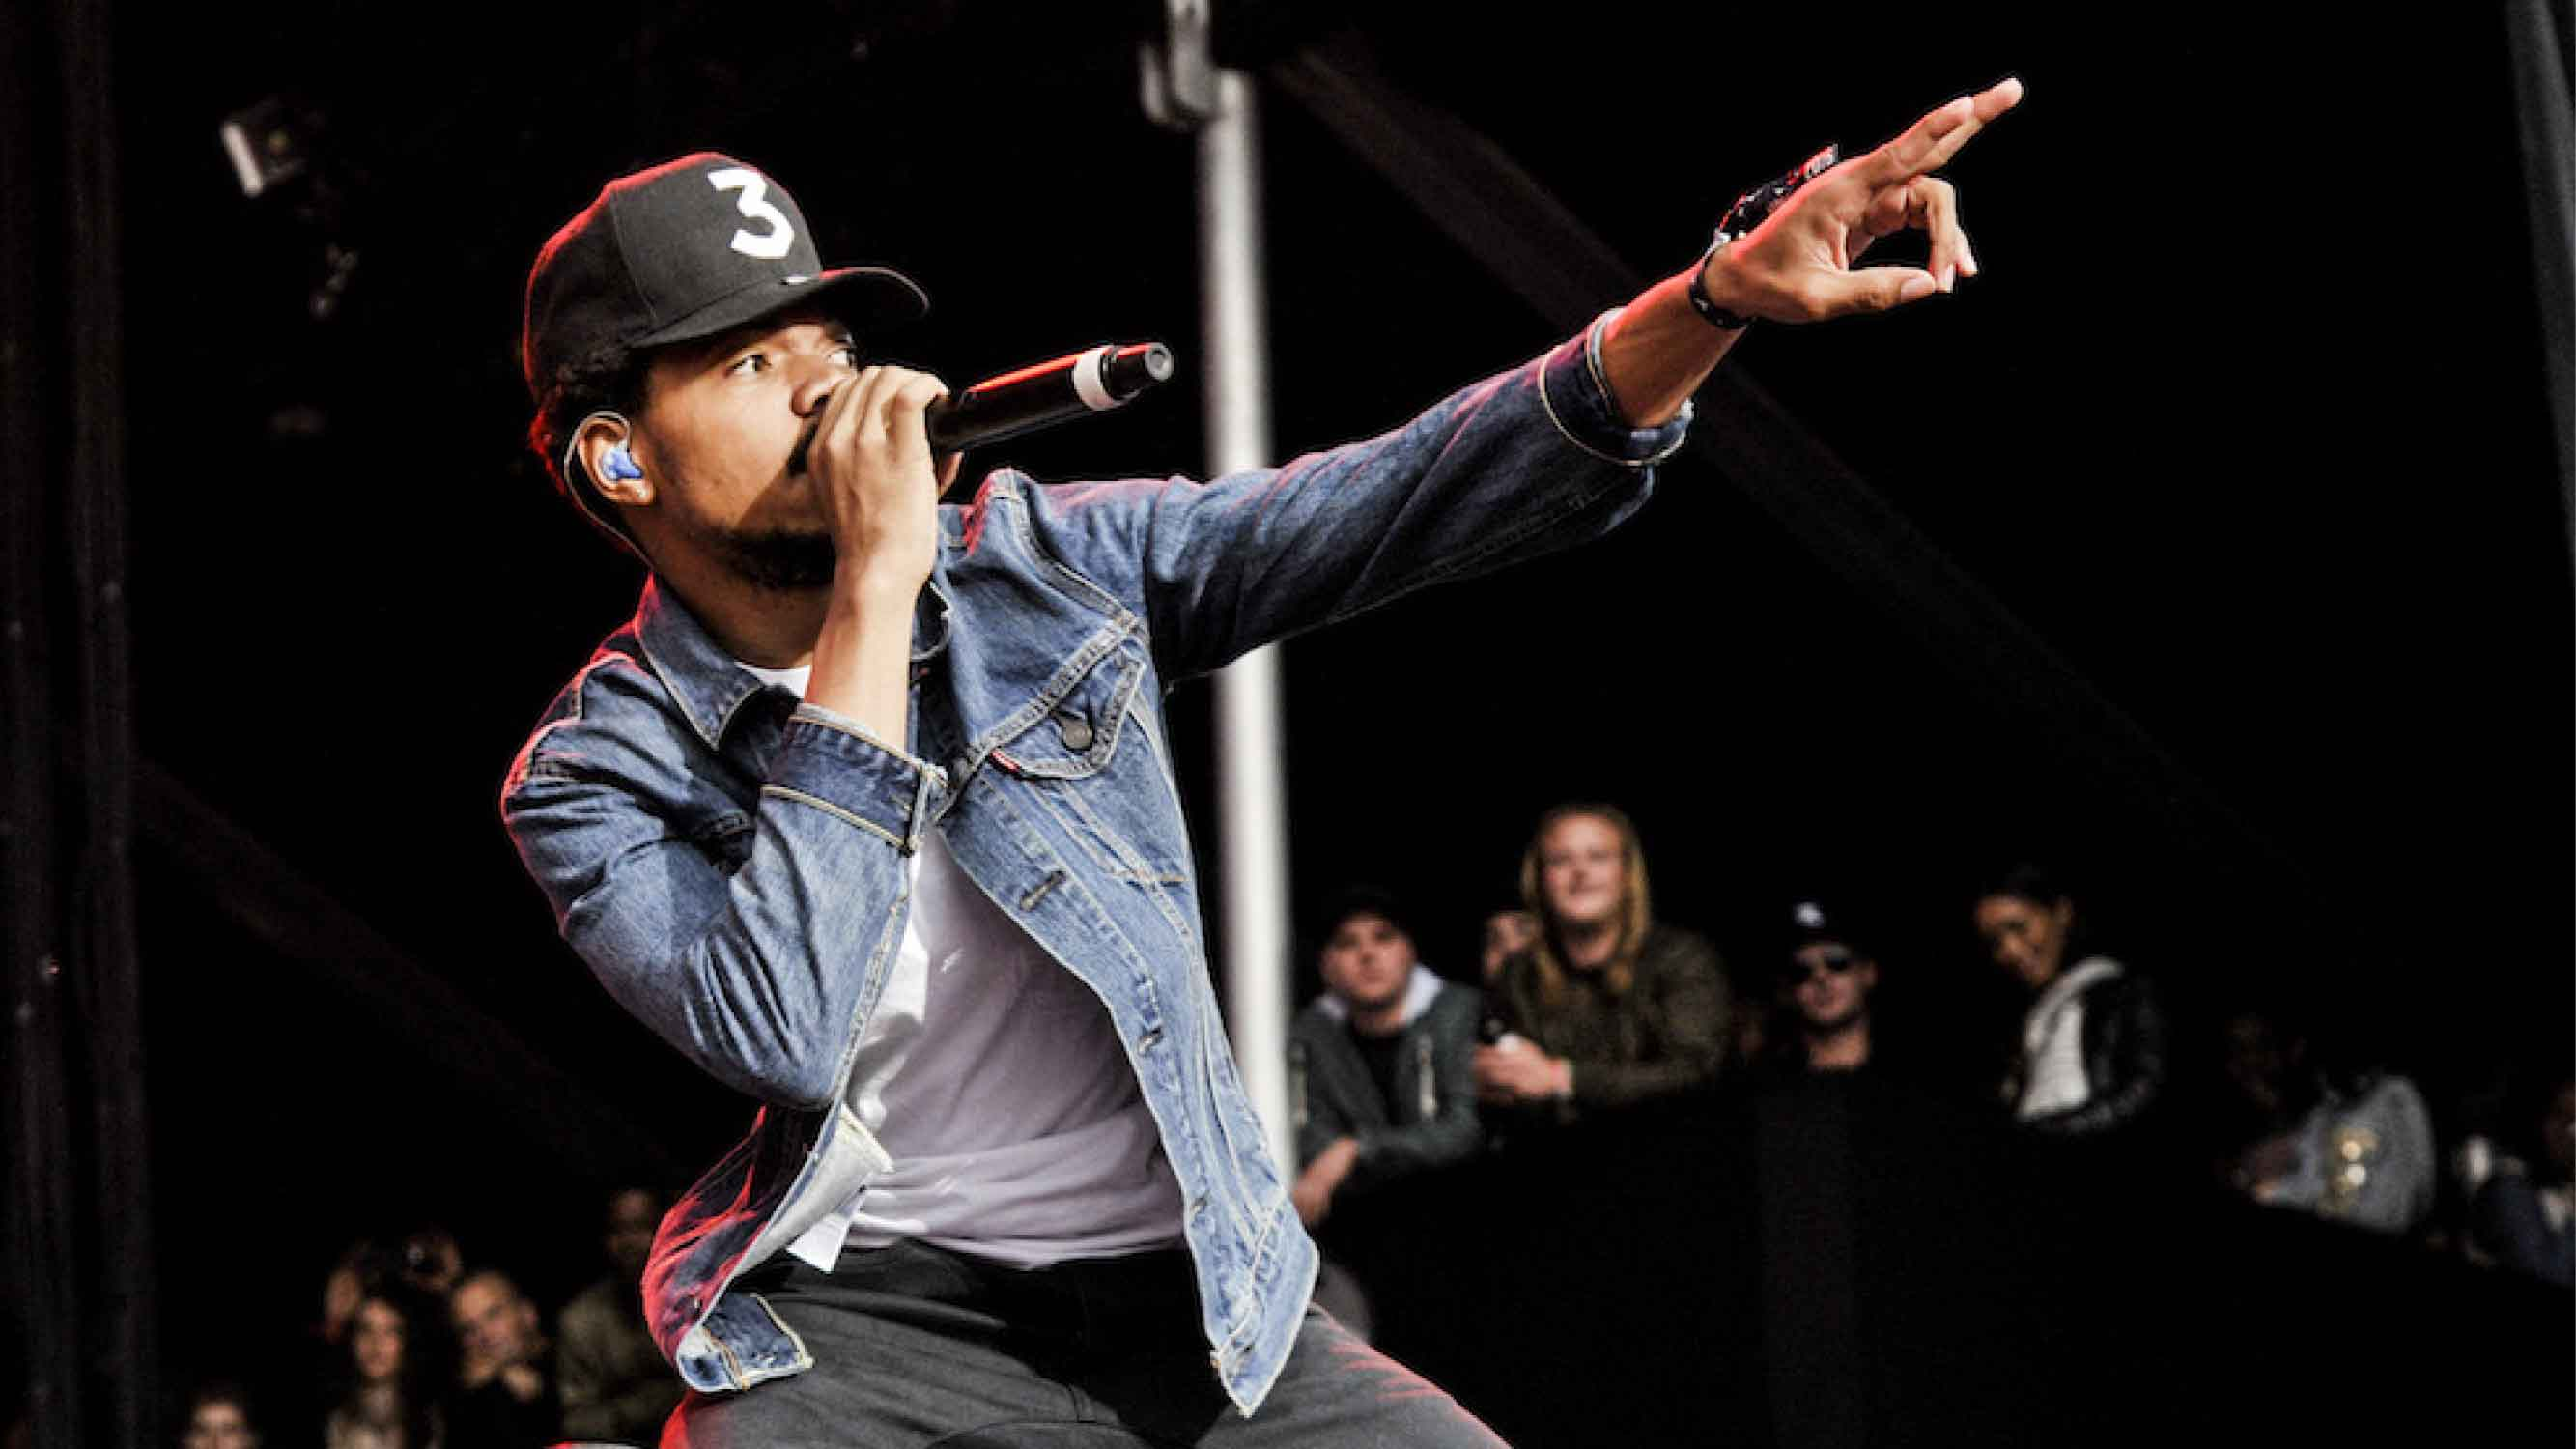 Chance The Rapper, Haim, and more announced for Life Is Beautiful 2017